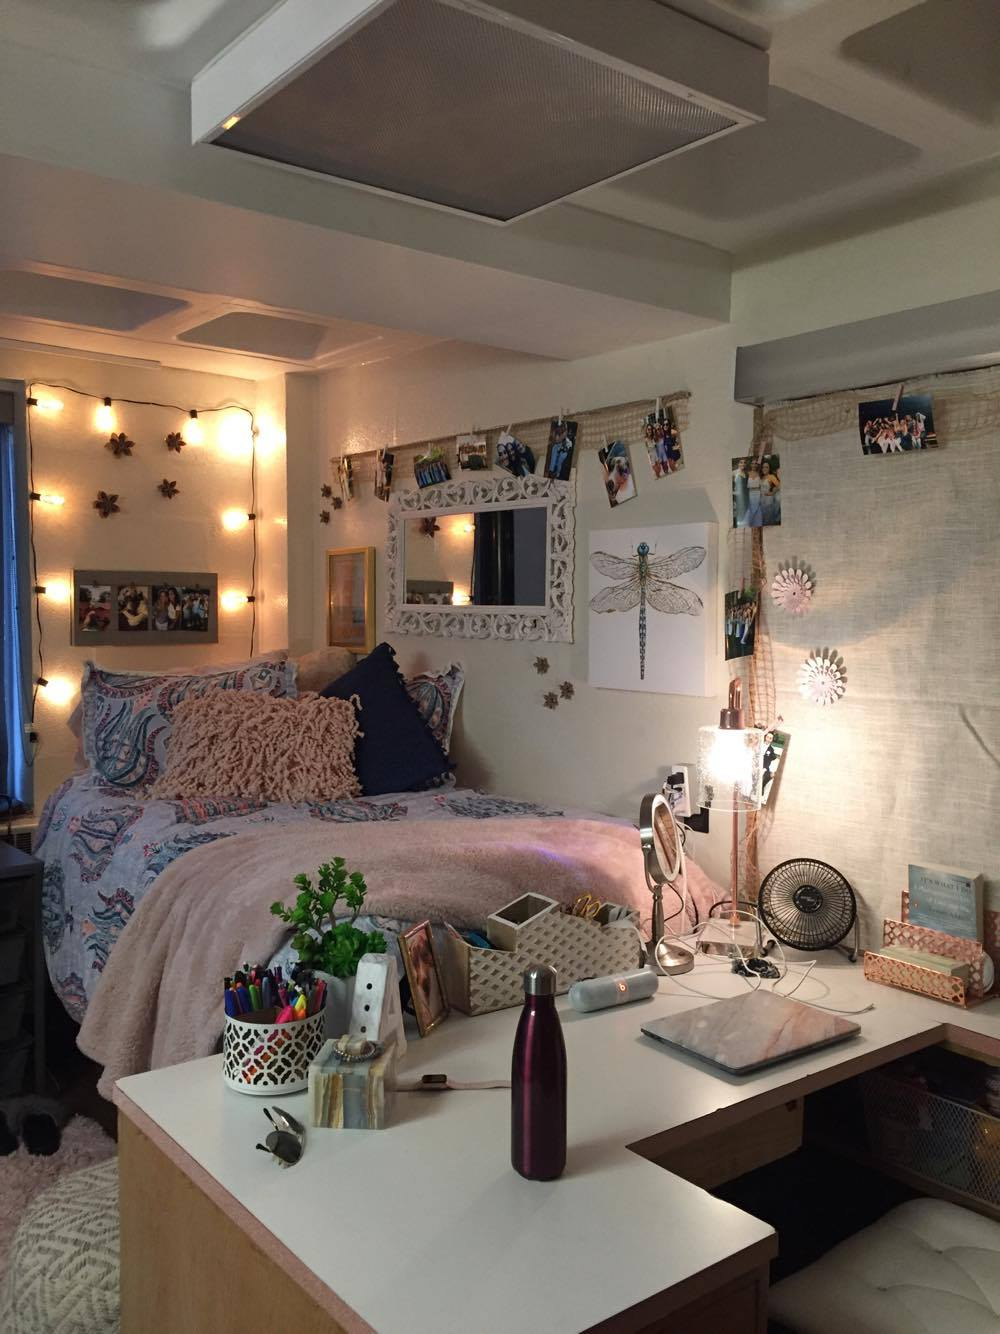 The Top 4 Dorm Room Decoration Essentials